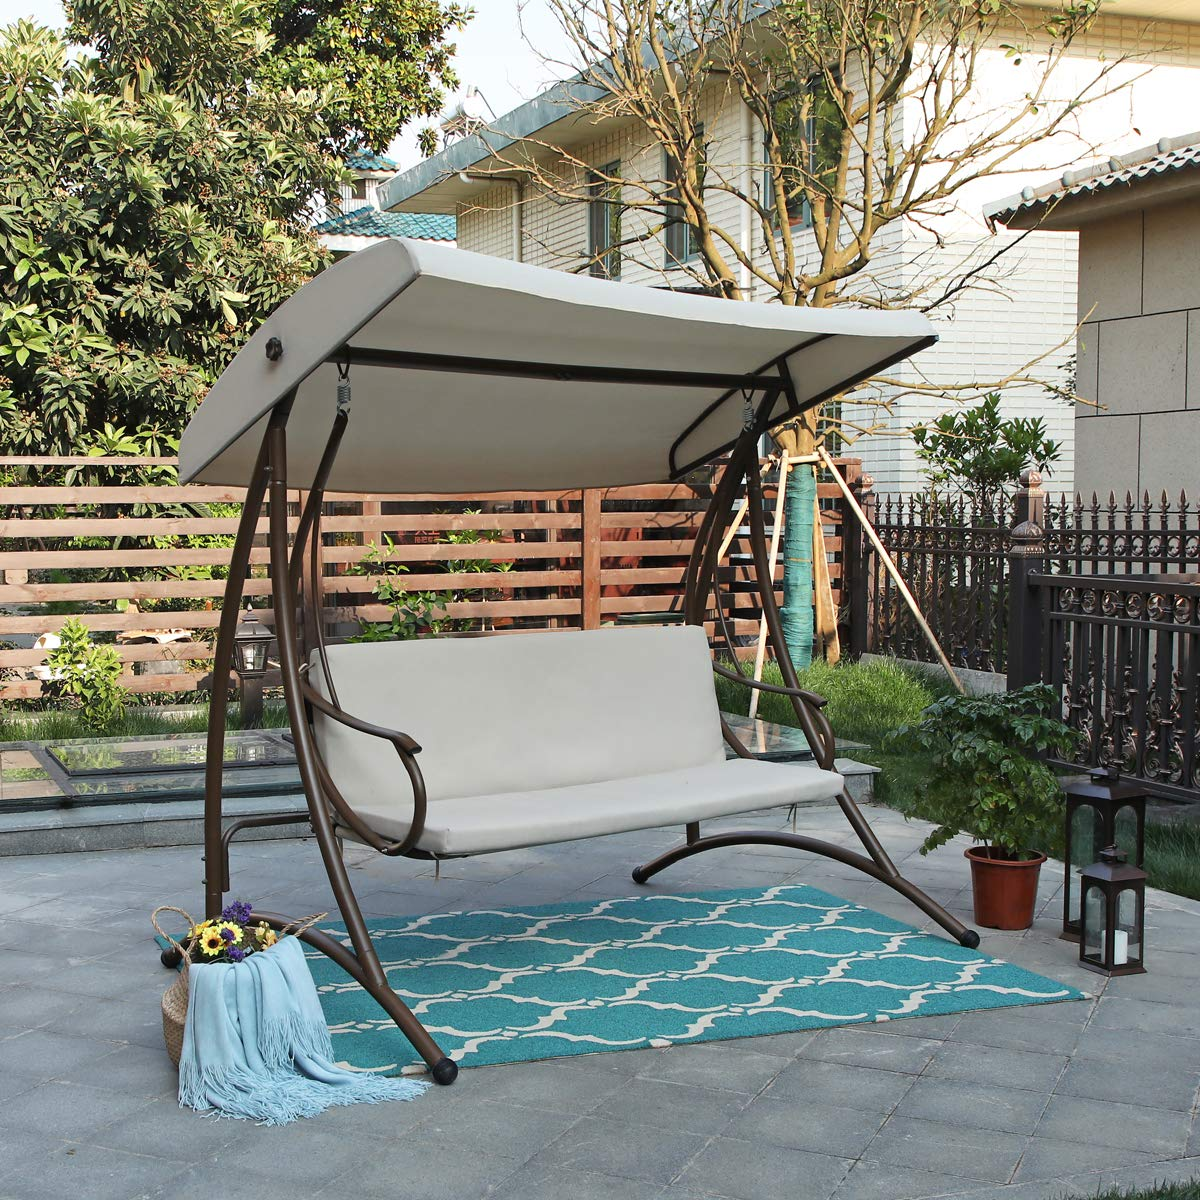 Alphamarts coupon: MFSTUDIO 3 Person Patio Swing Chair Glider with Side Table Patio Porch Steel Frame 3 Person Swing Chair with Canopy